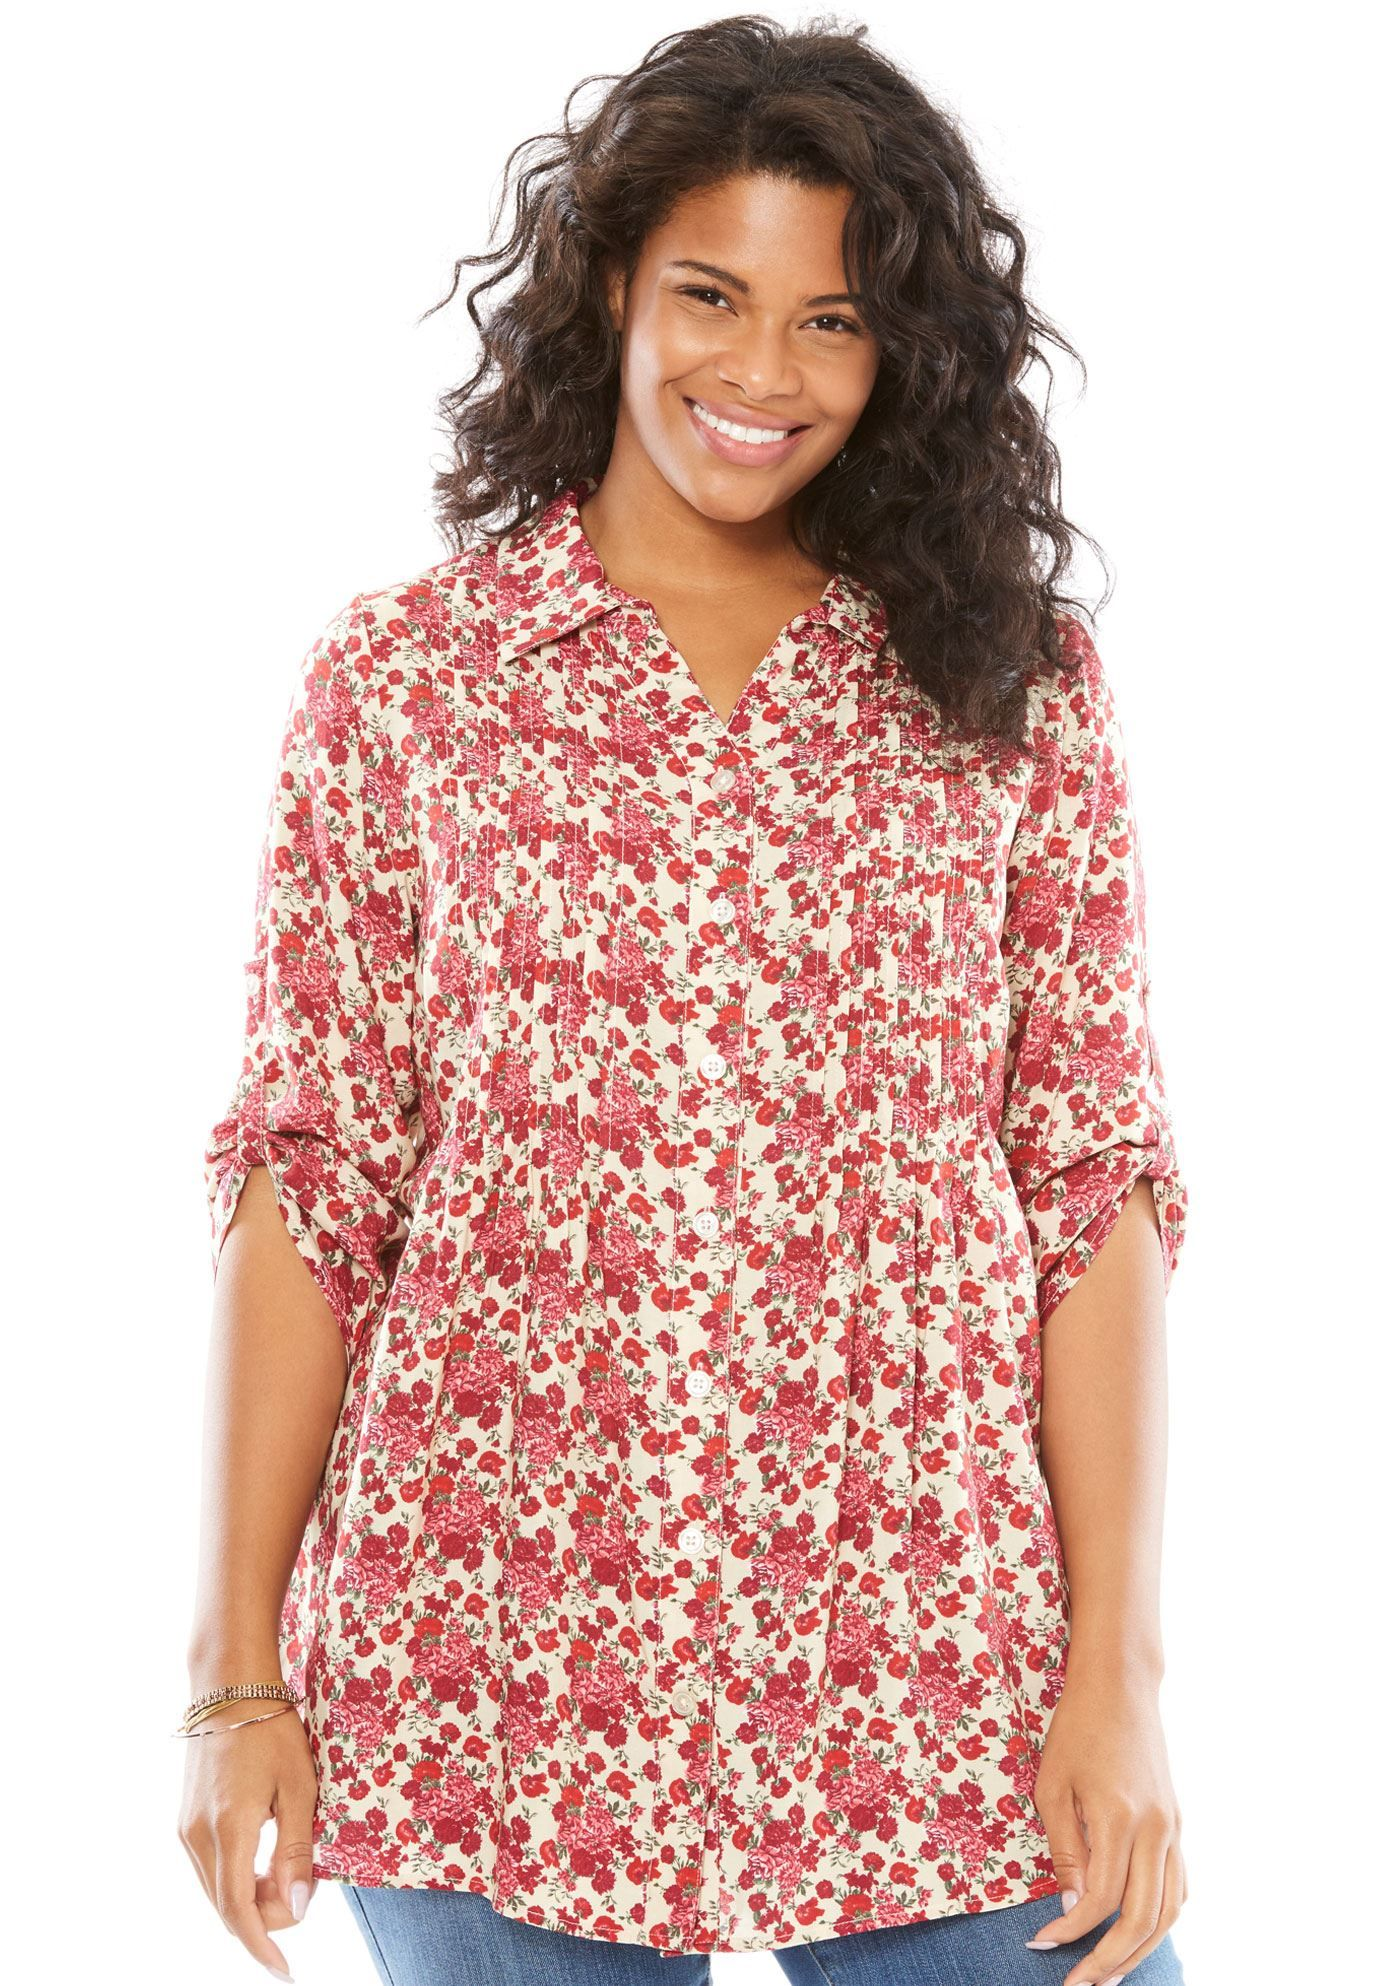 Tunic top with button-tab convertible sleeves - Women\'s Plus ...